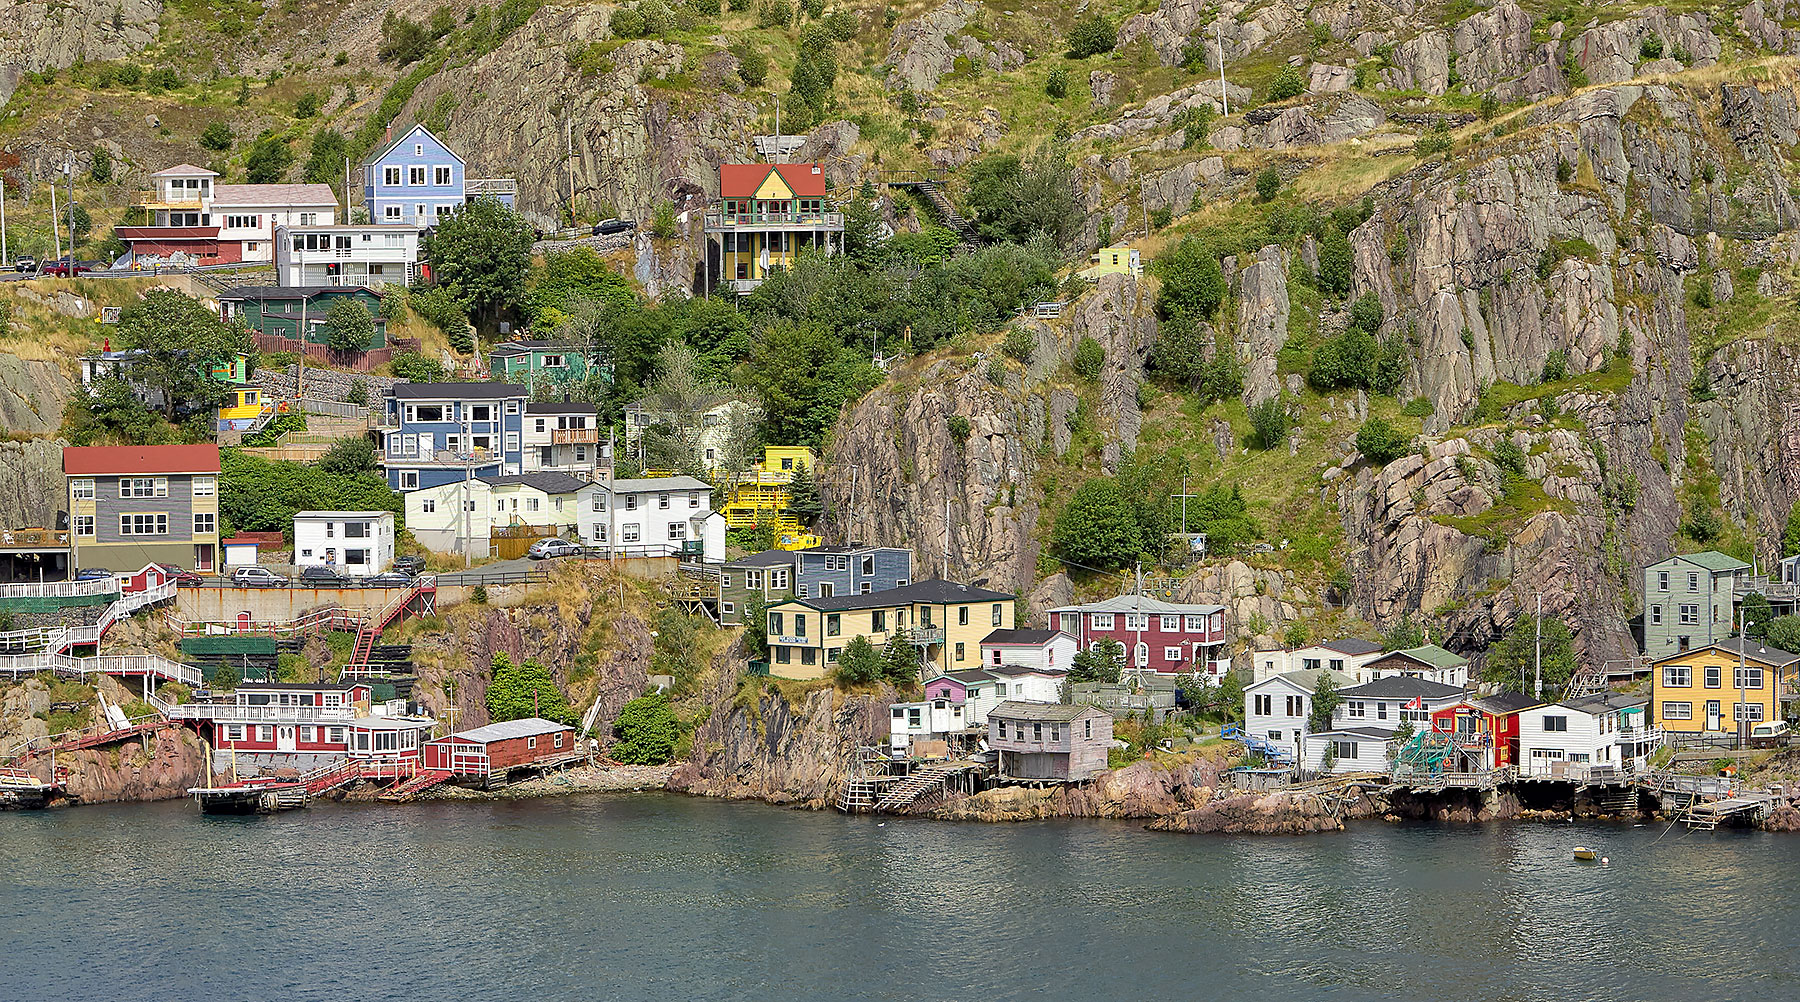 The Battery, St. John's Newfoundland © johncameron.ca